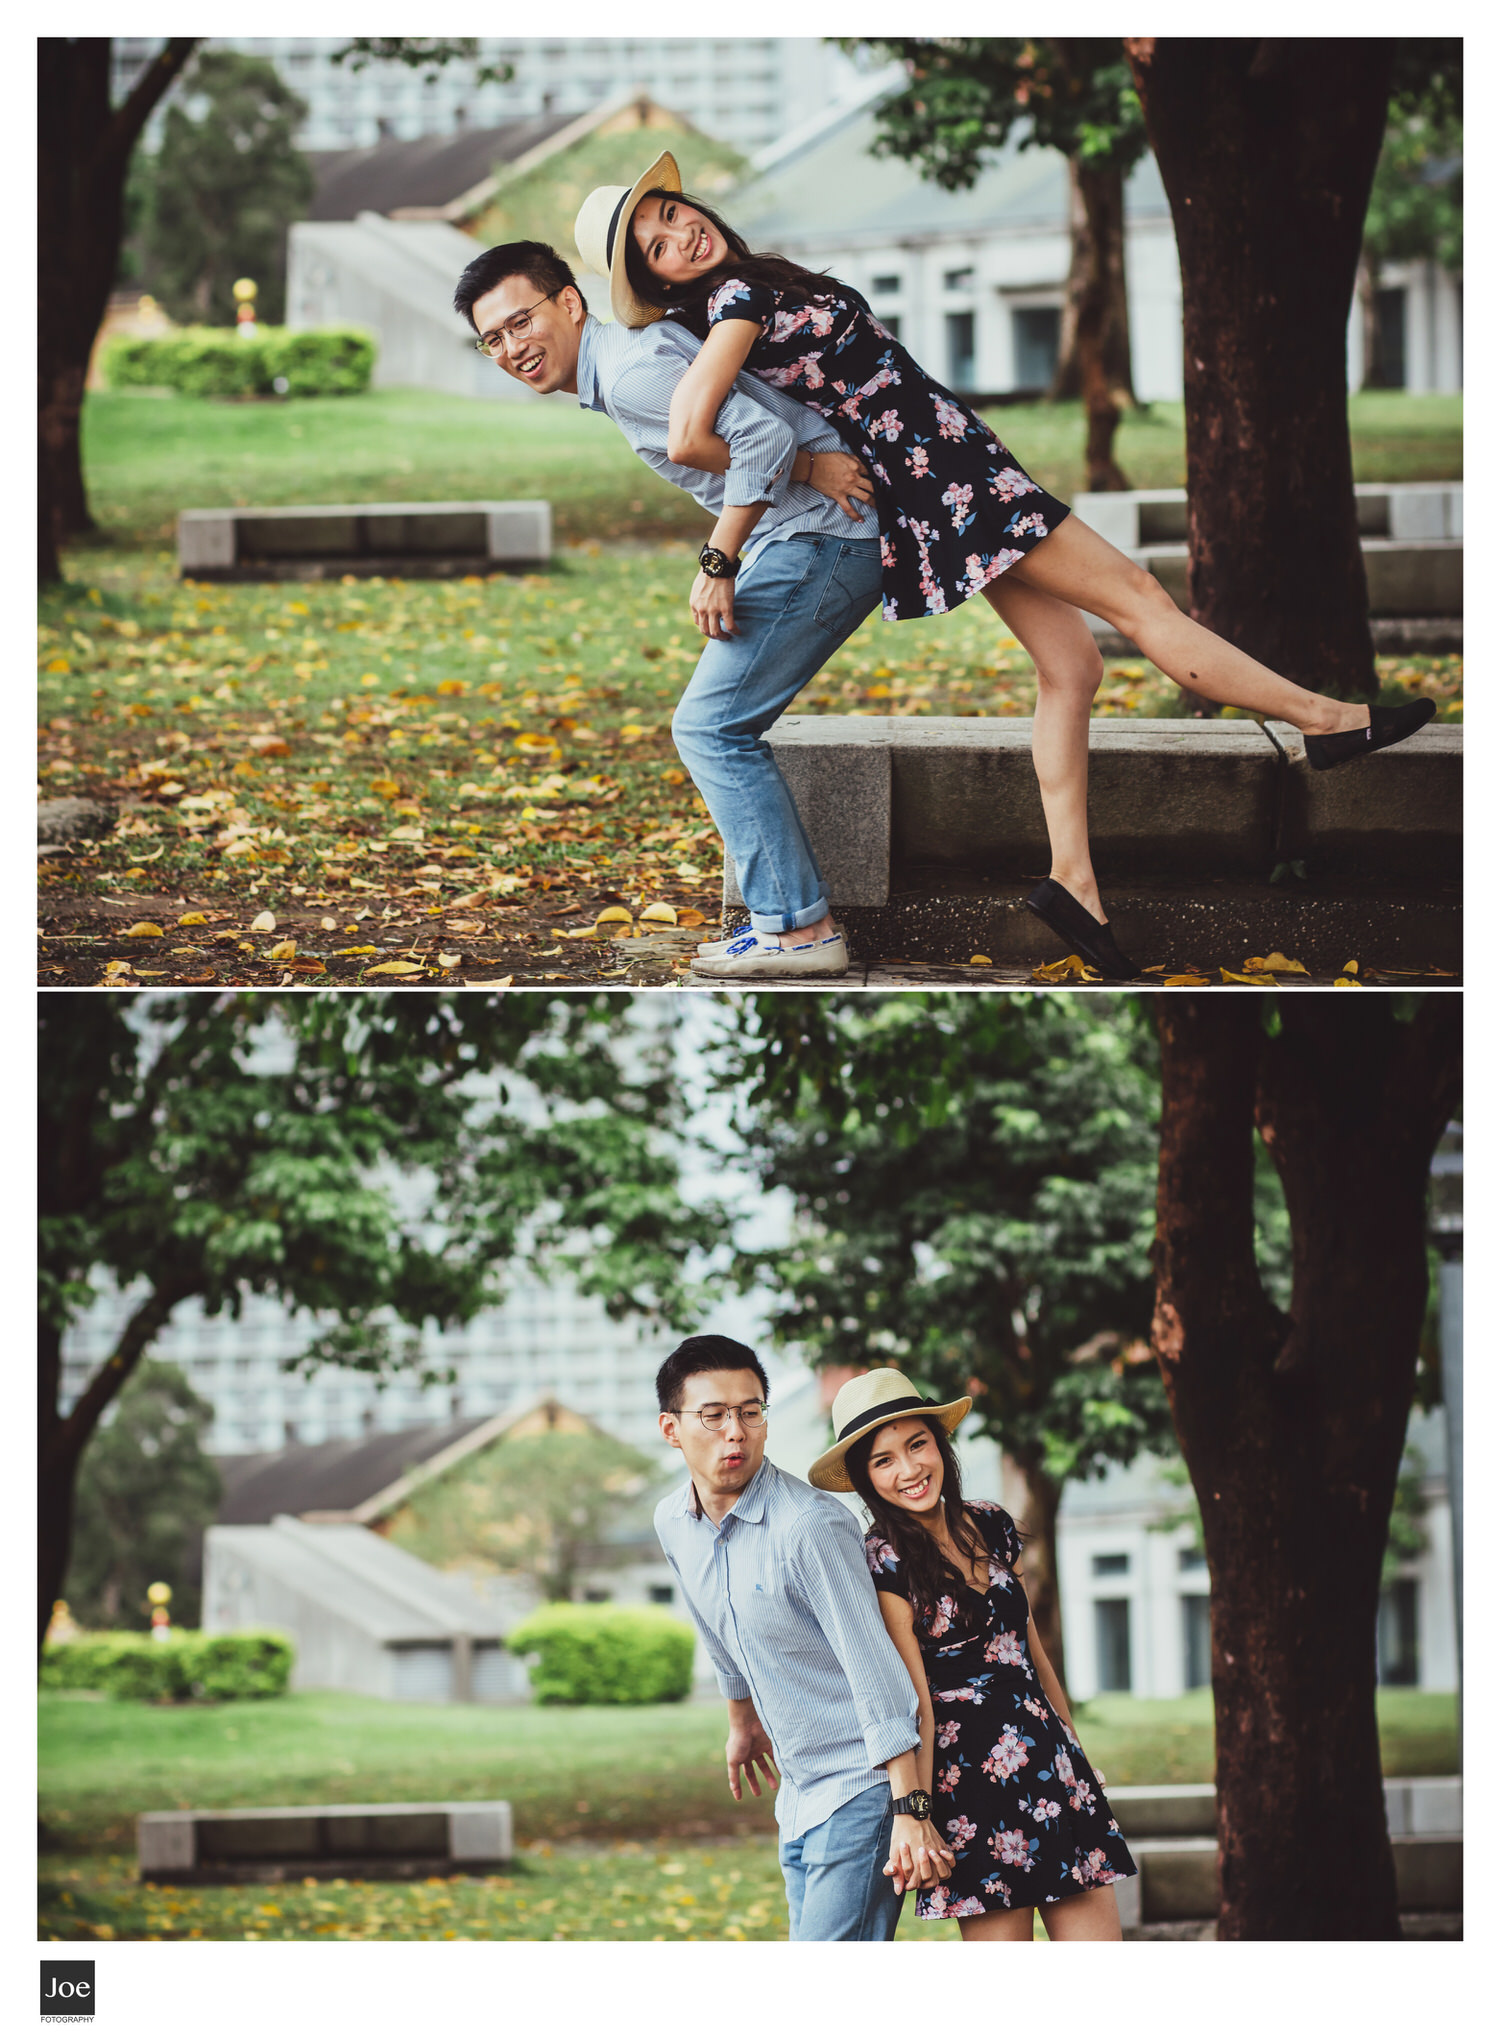 joe-fotography-engagement-photo-adrian-hilpy-53.jpg